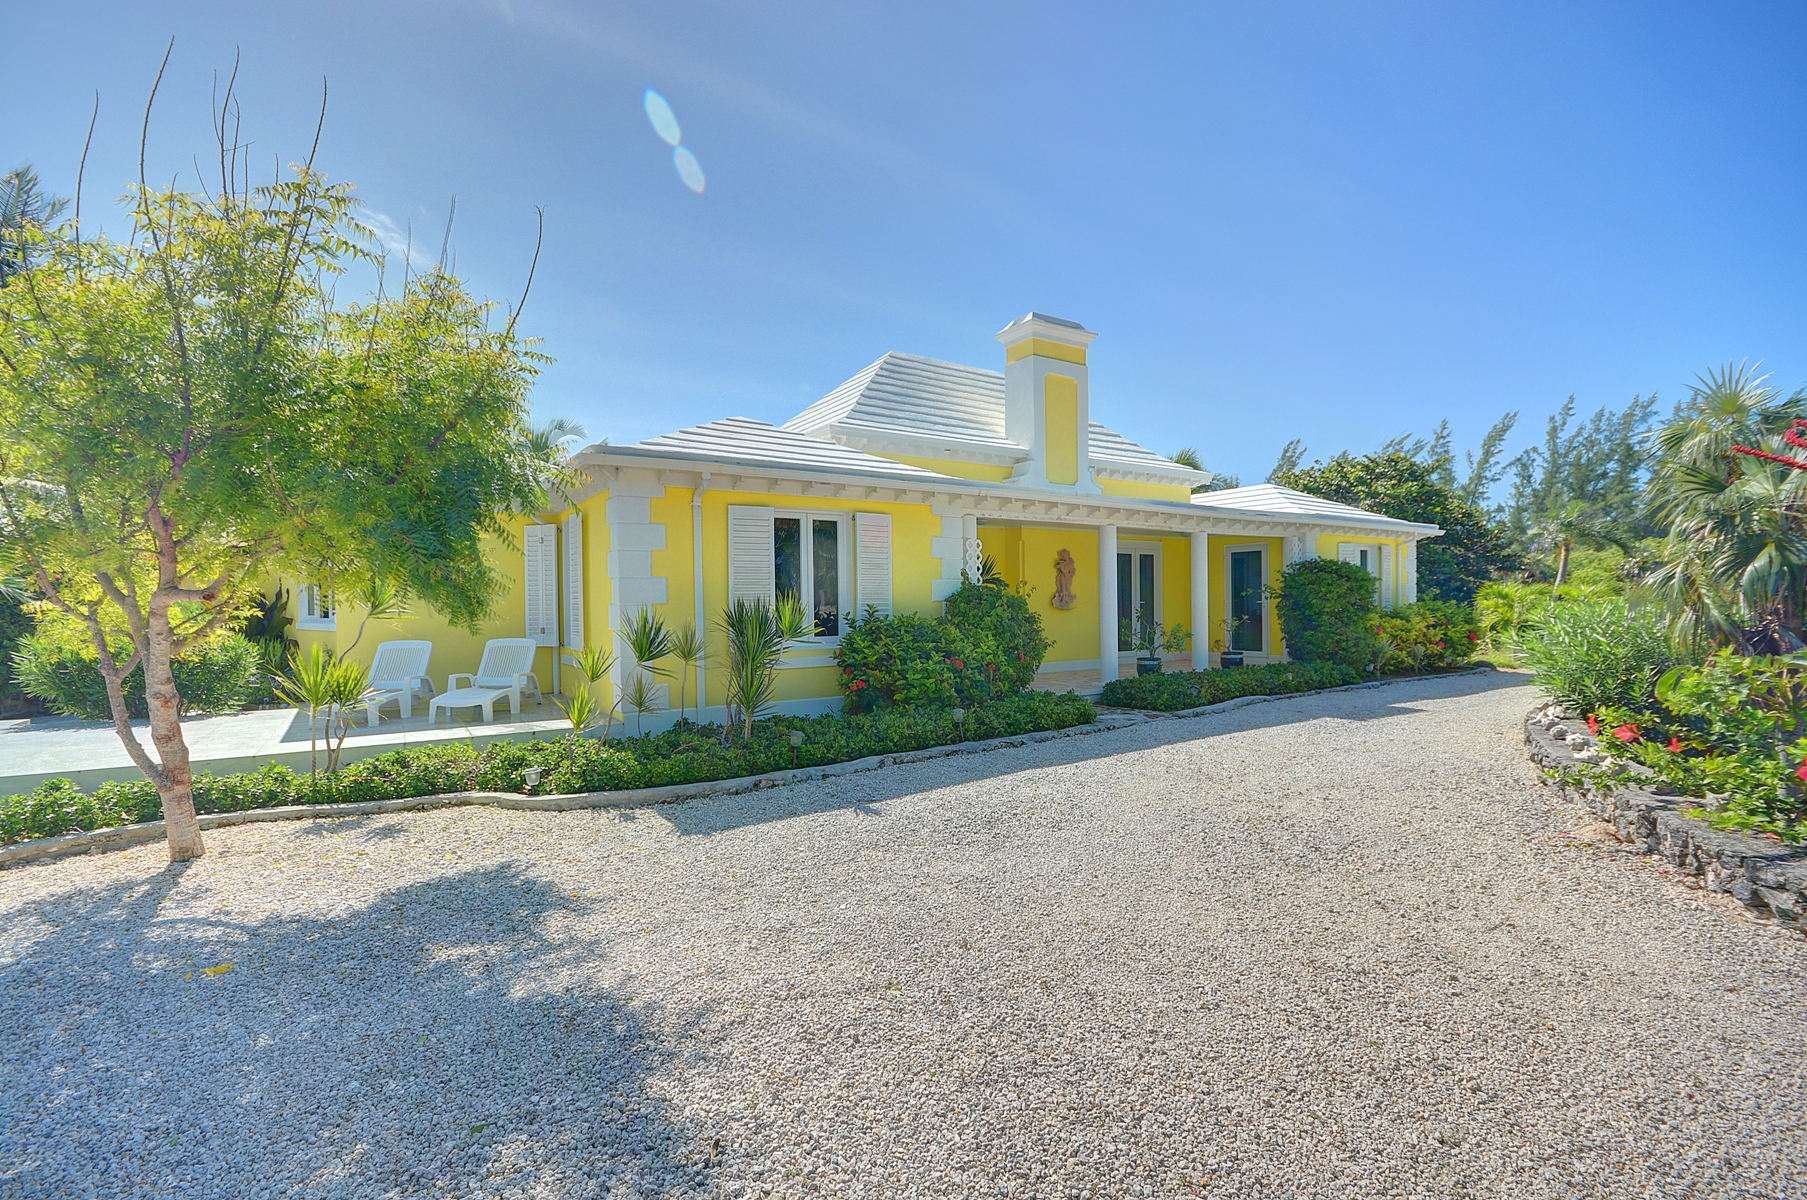 Single Family Home for Sale at Mellow Yellow, Double Bay, Eleuthera MLS 27217 Double Bay, Eleuthera, Bahamas